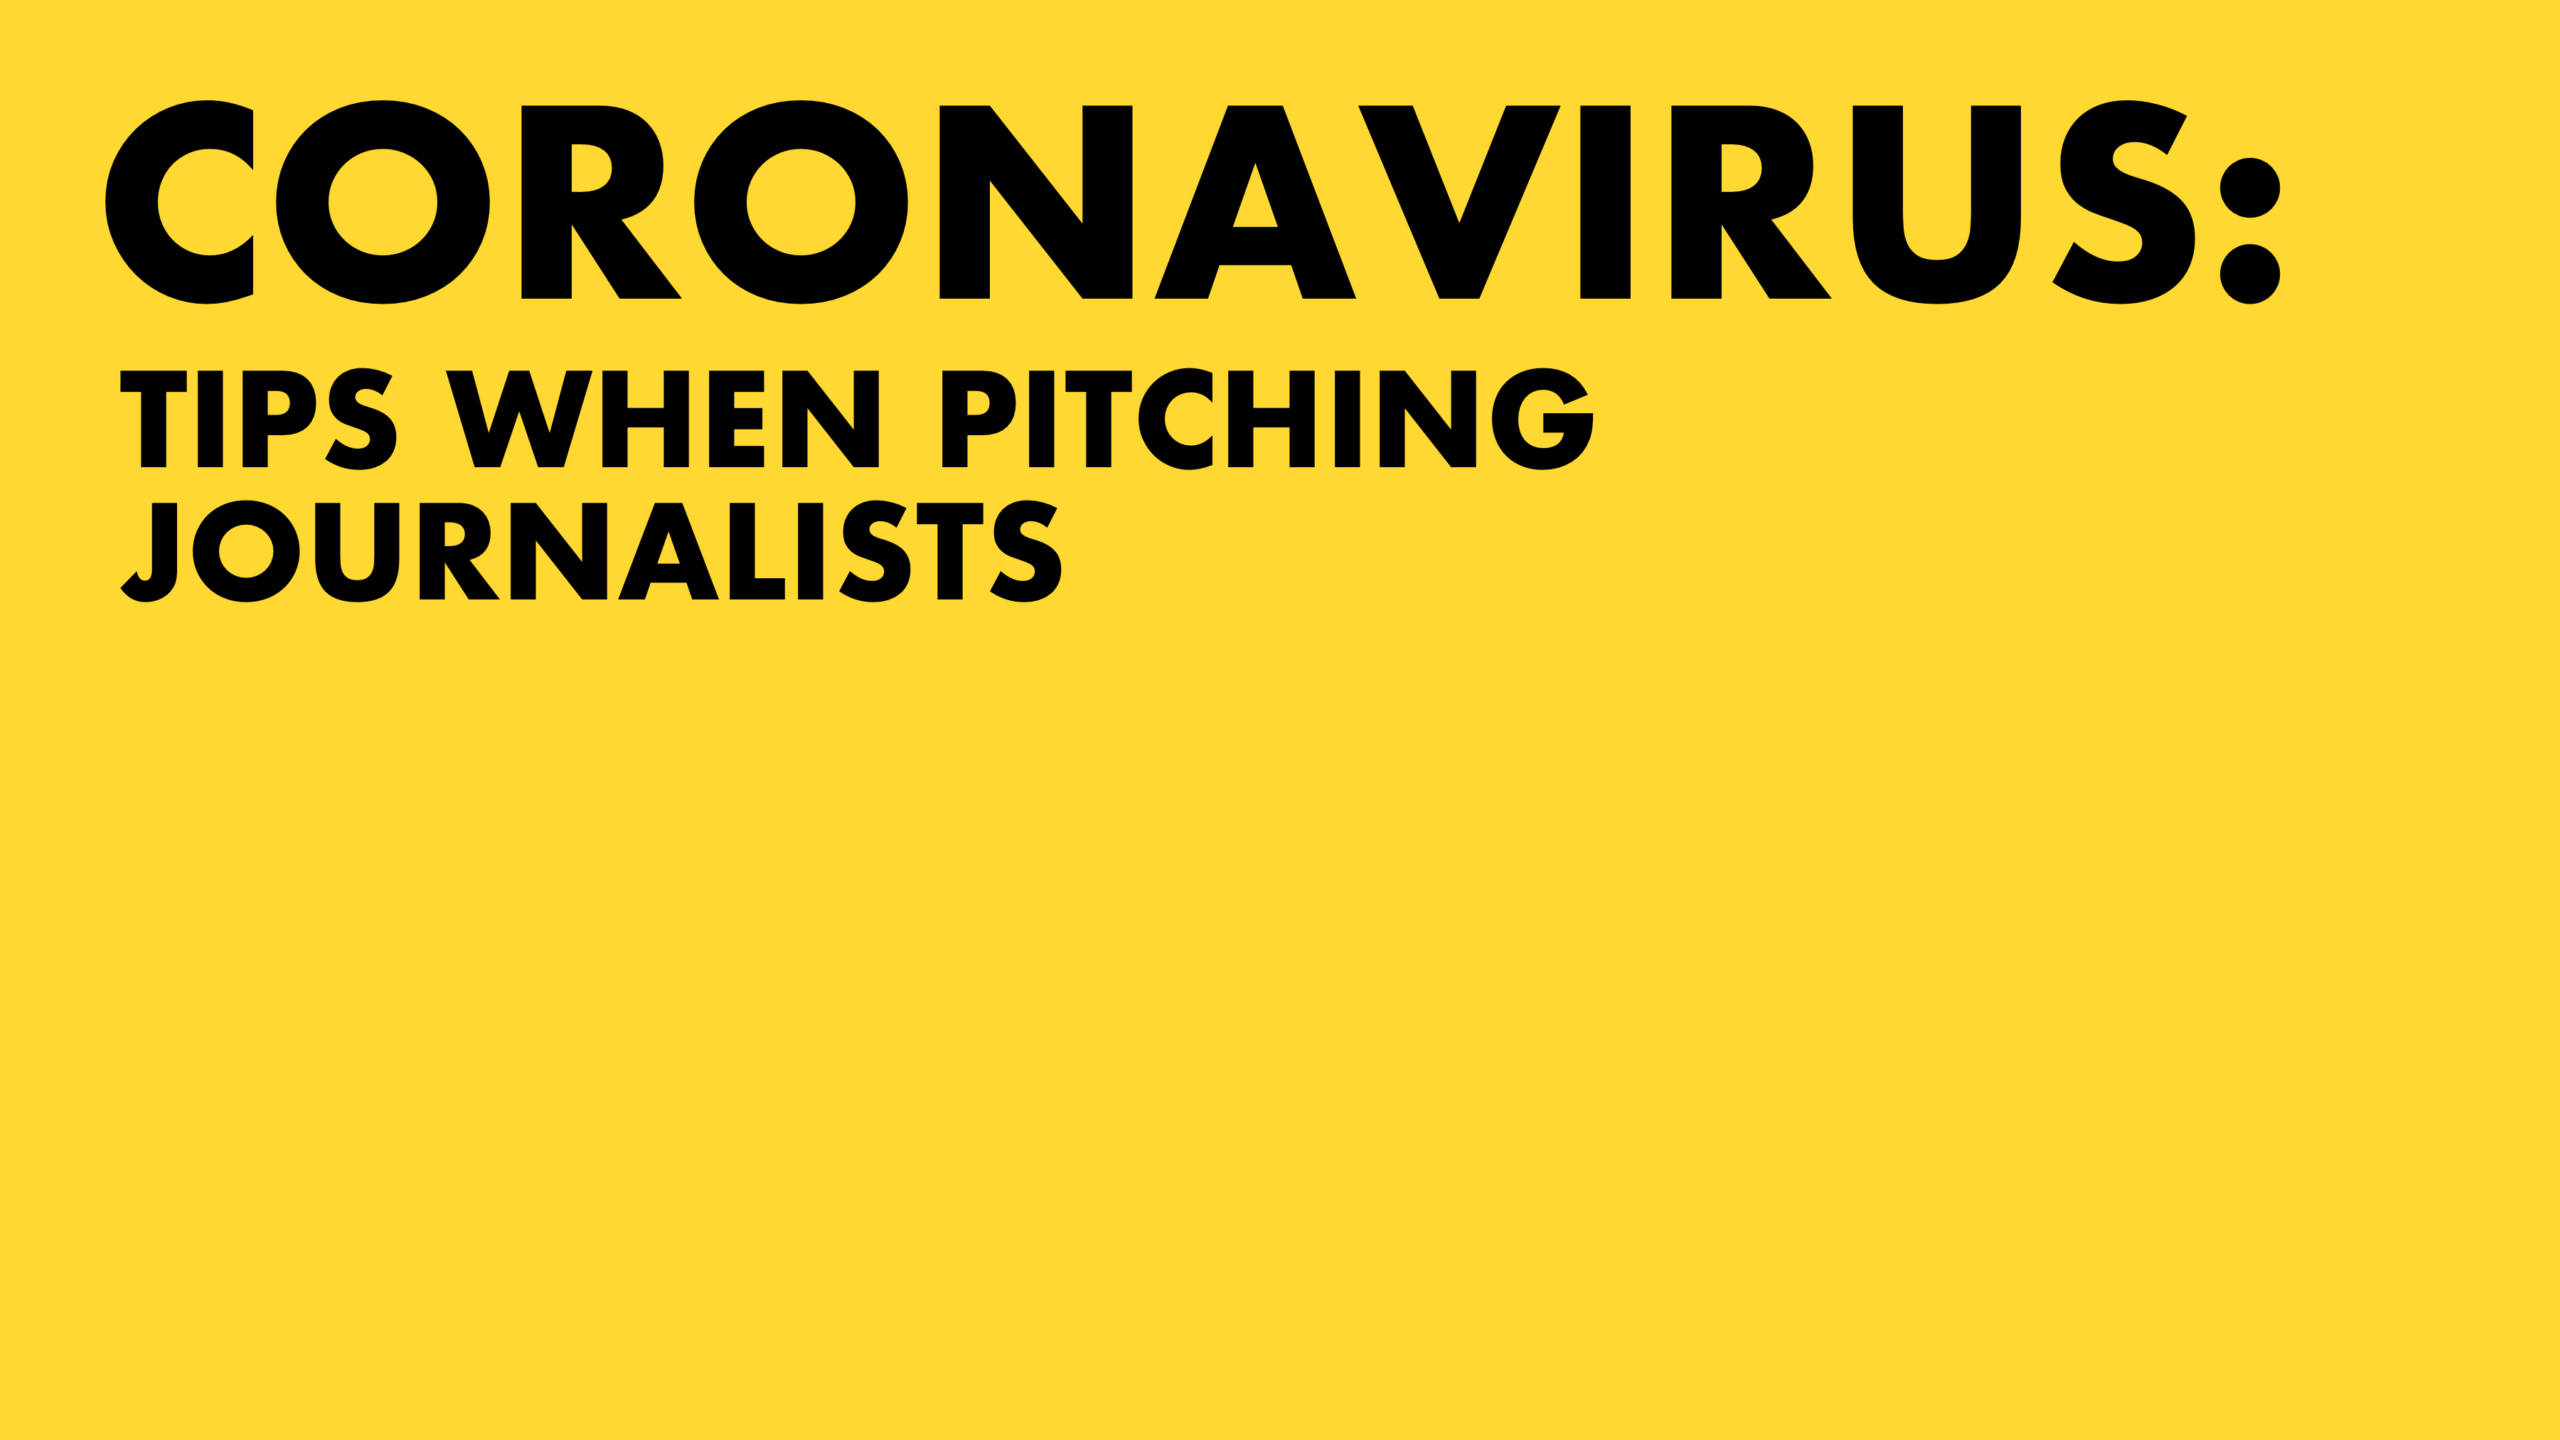 Tips When Pitching Journalists During Coronavirus